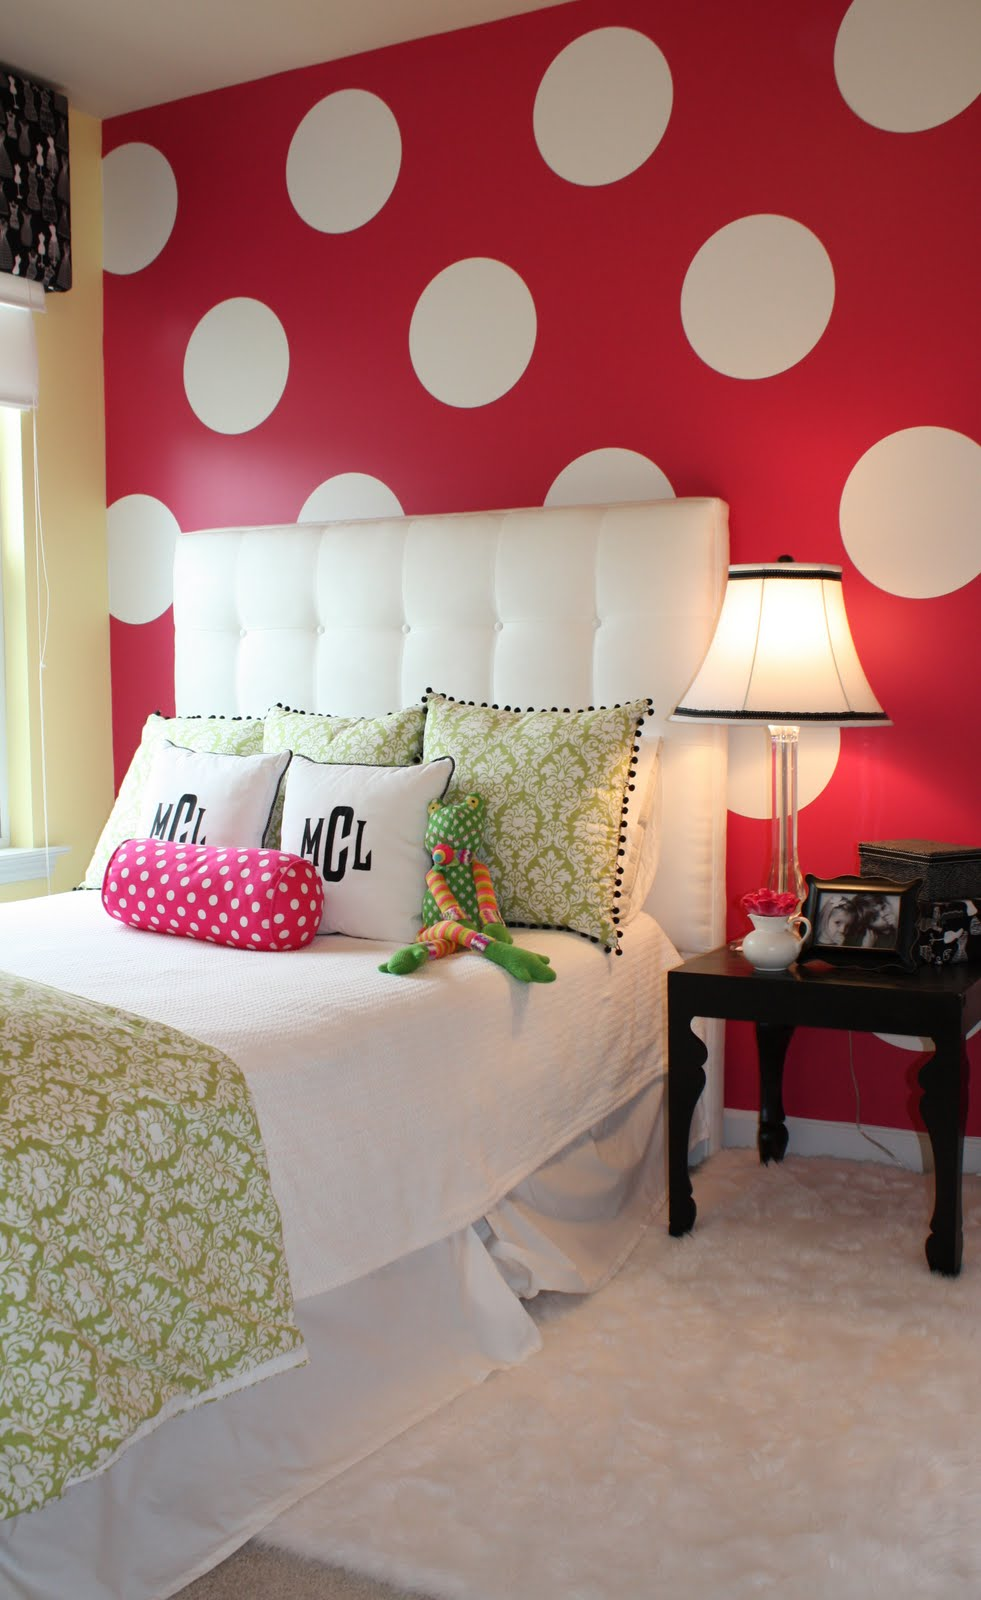 ideas for shelby 39 s minnie mouse bedroom on pinterest minnie mouse polka dot walls and disney. Black Bedroom Furniture Sets. Home Design Ideas